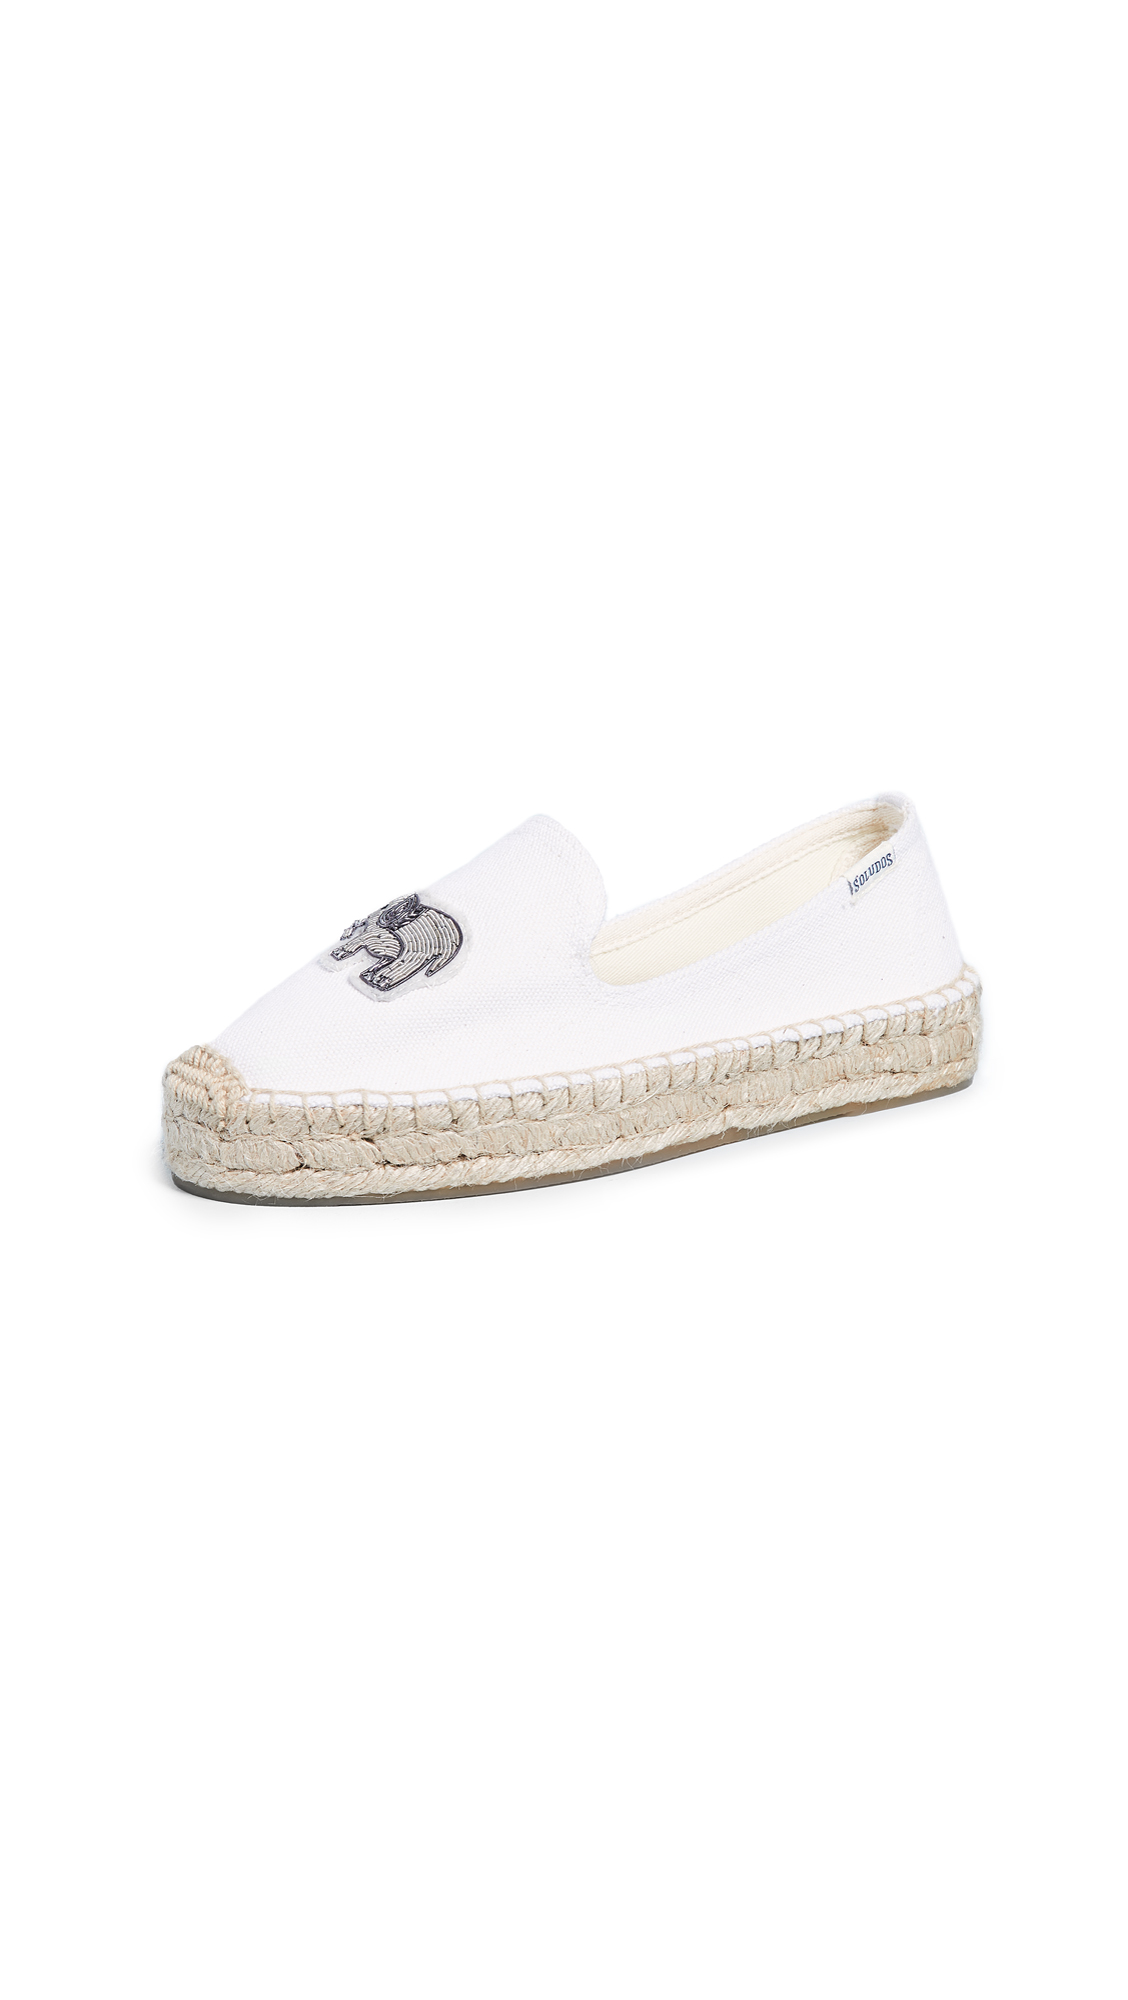 Elephant Beaded Smoking Slipper, White